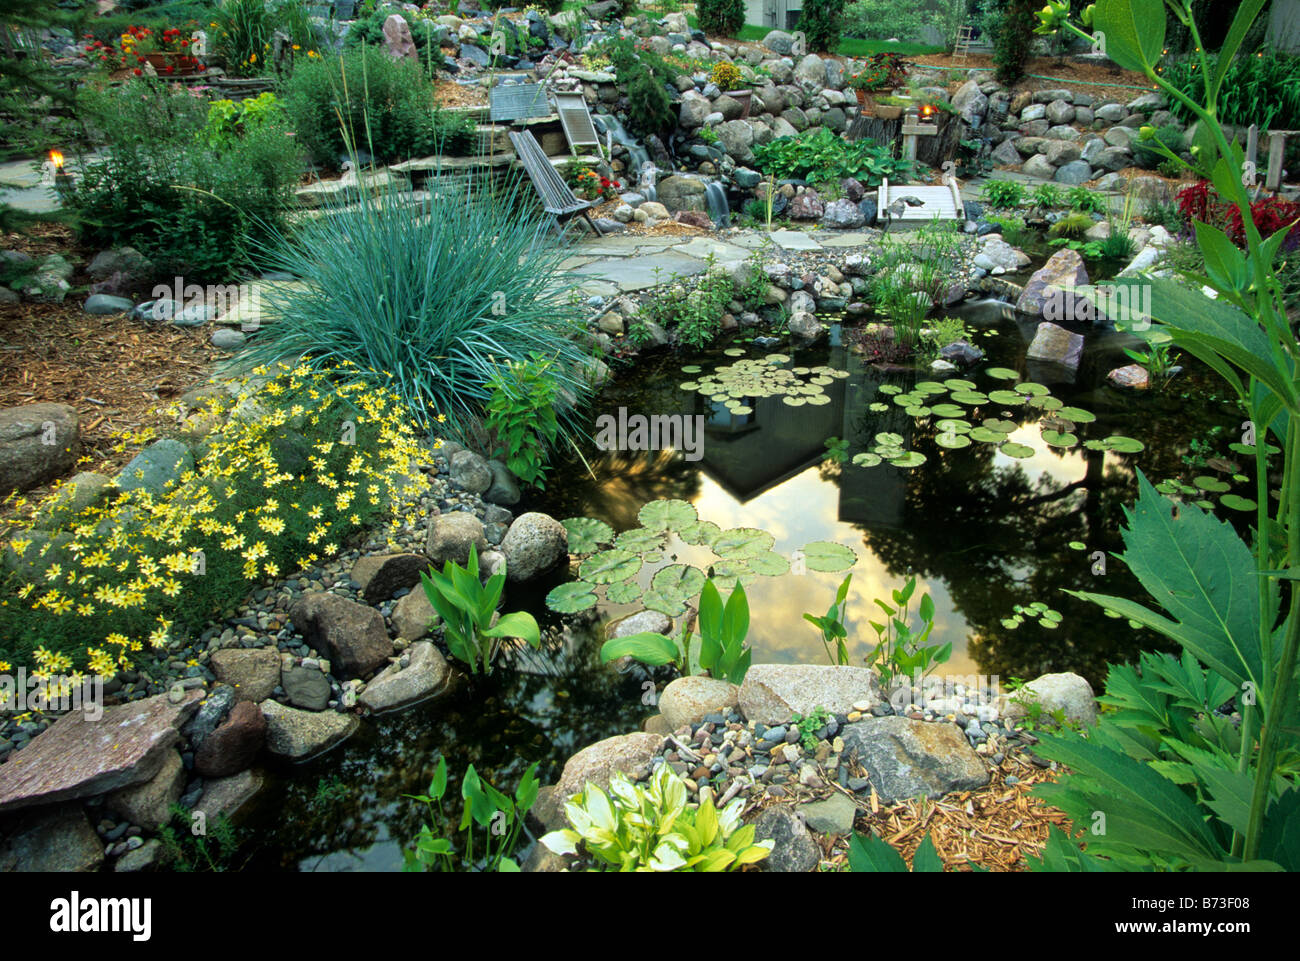 minneapolis minnesota water garden includes ornamental